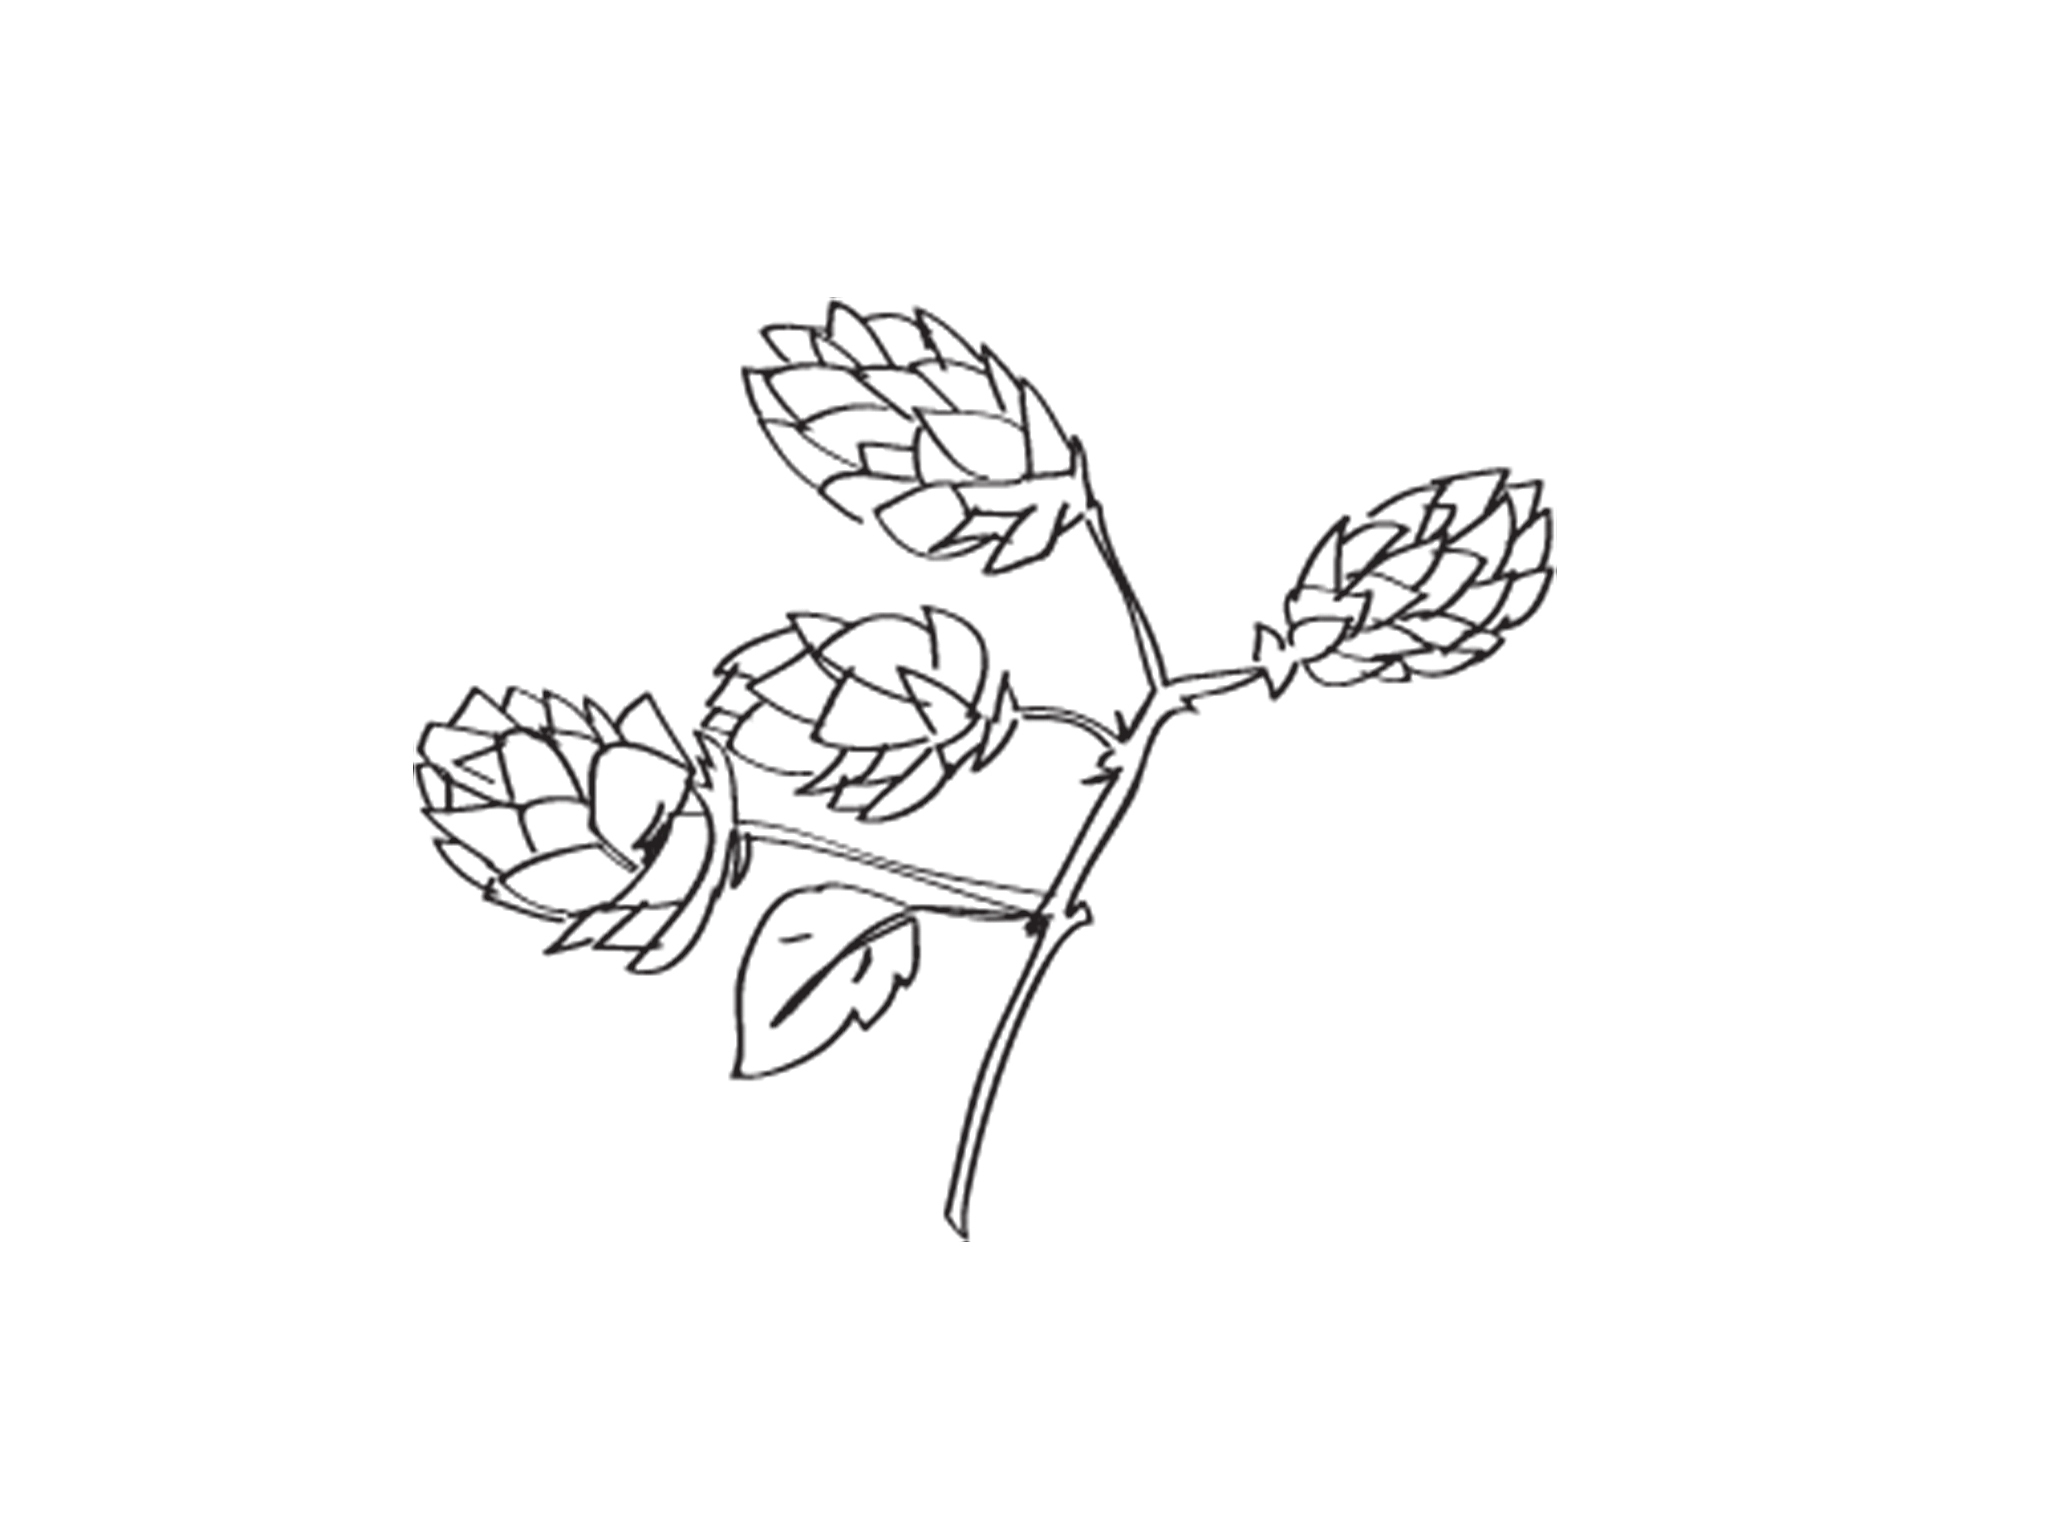 Hops illustration